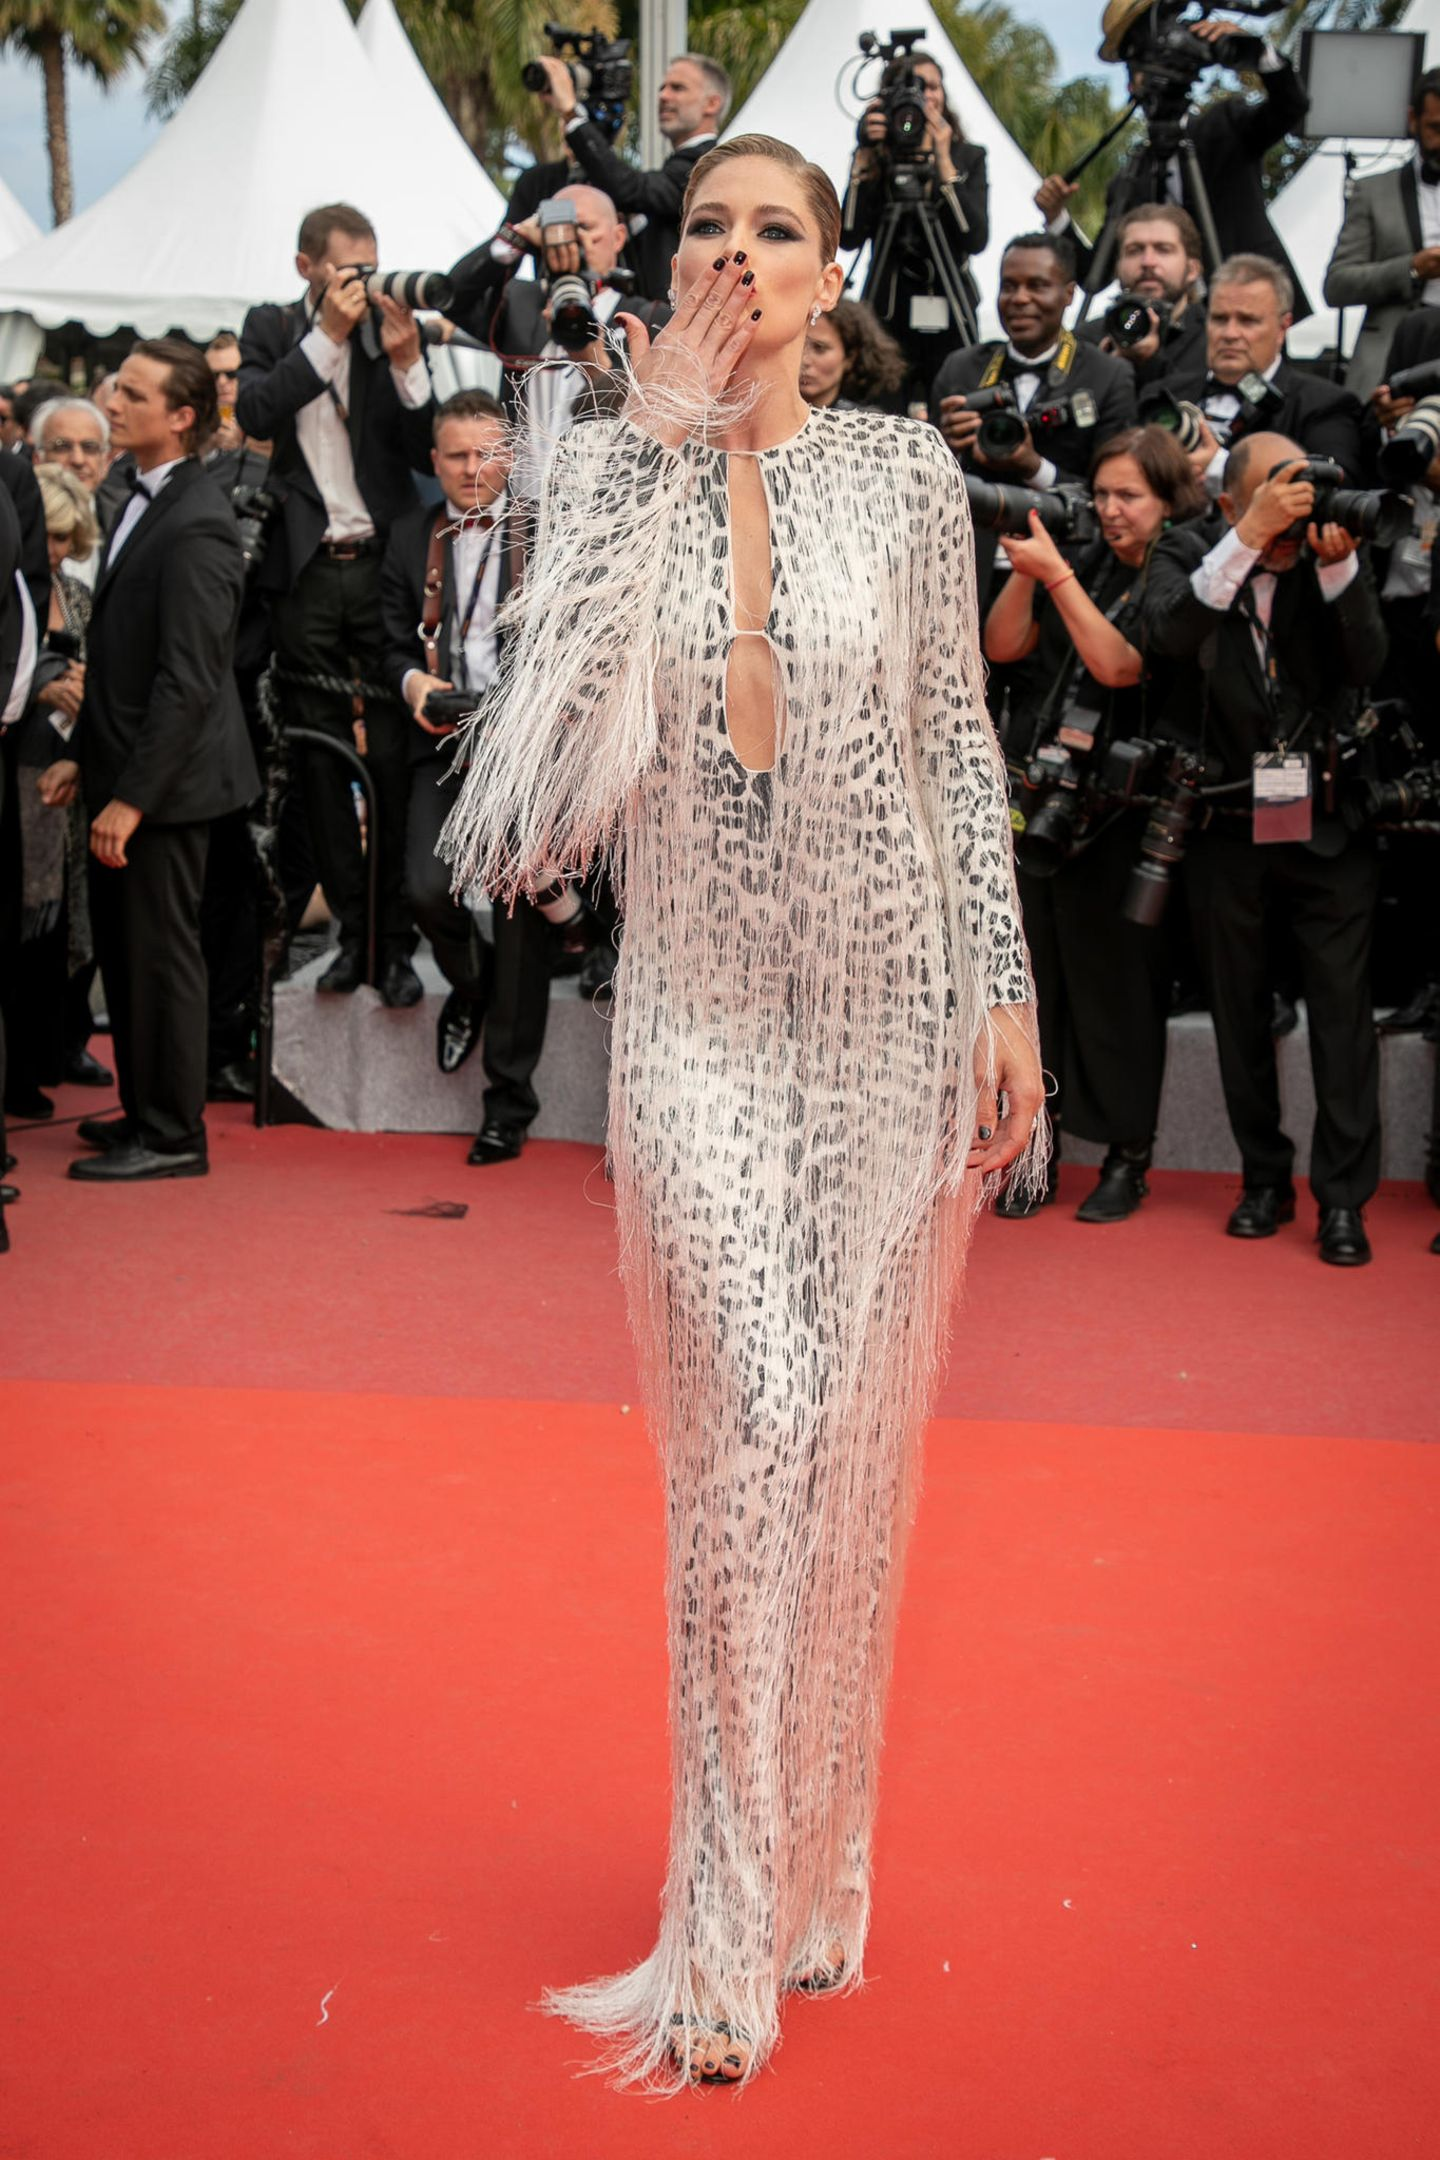 Filmfestspiele Cannes 2019